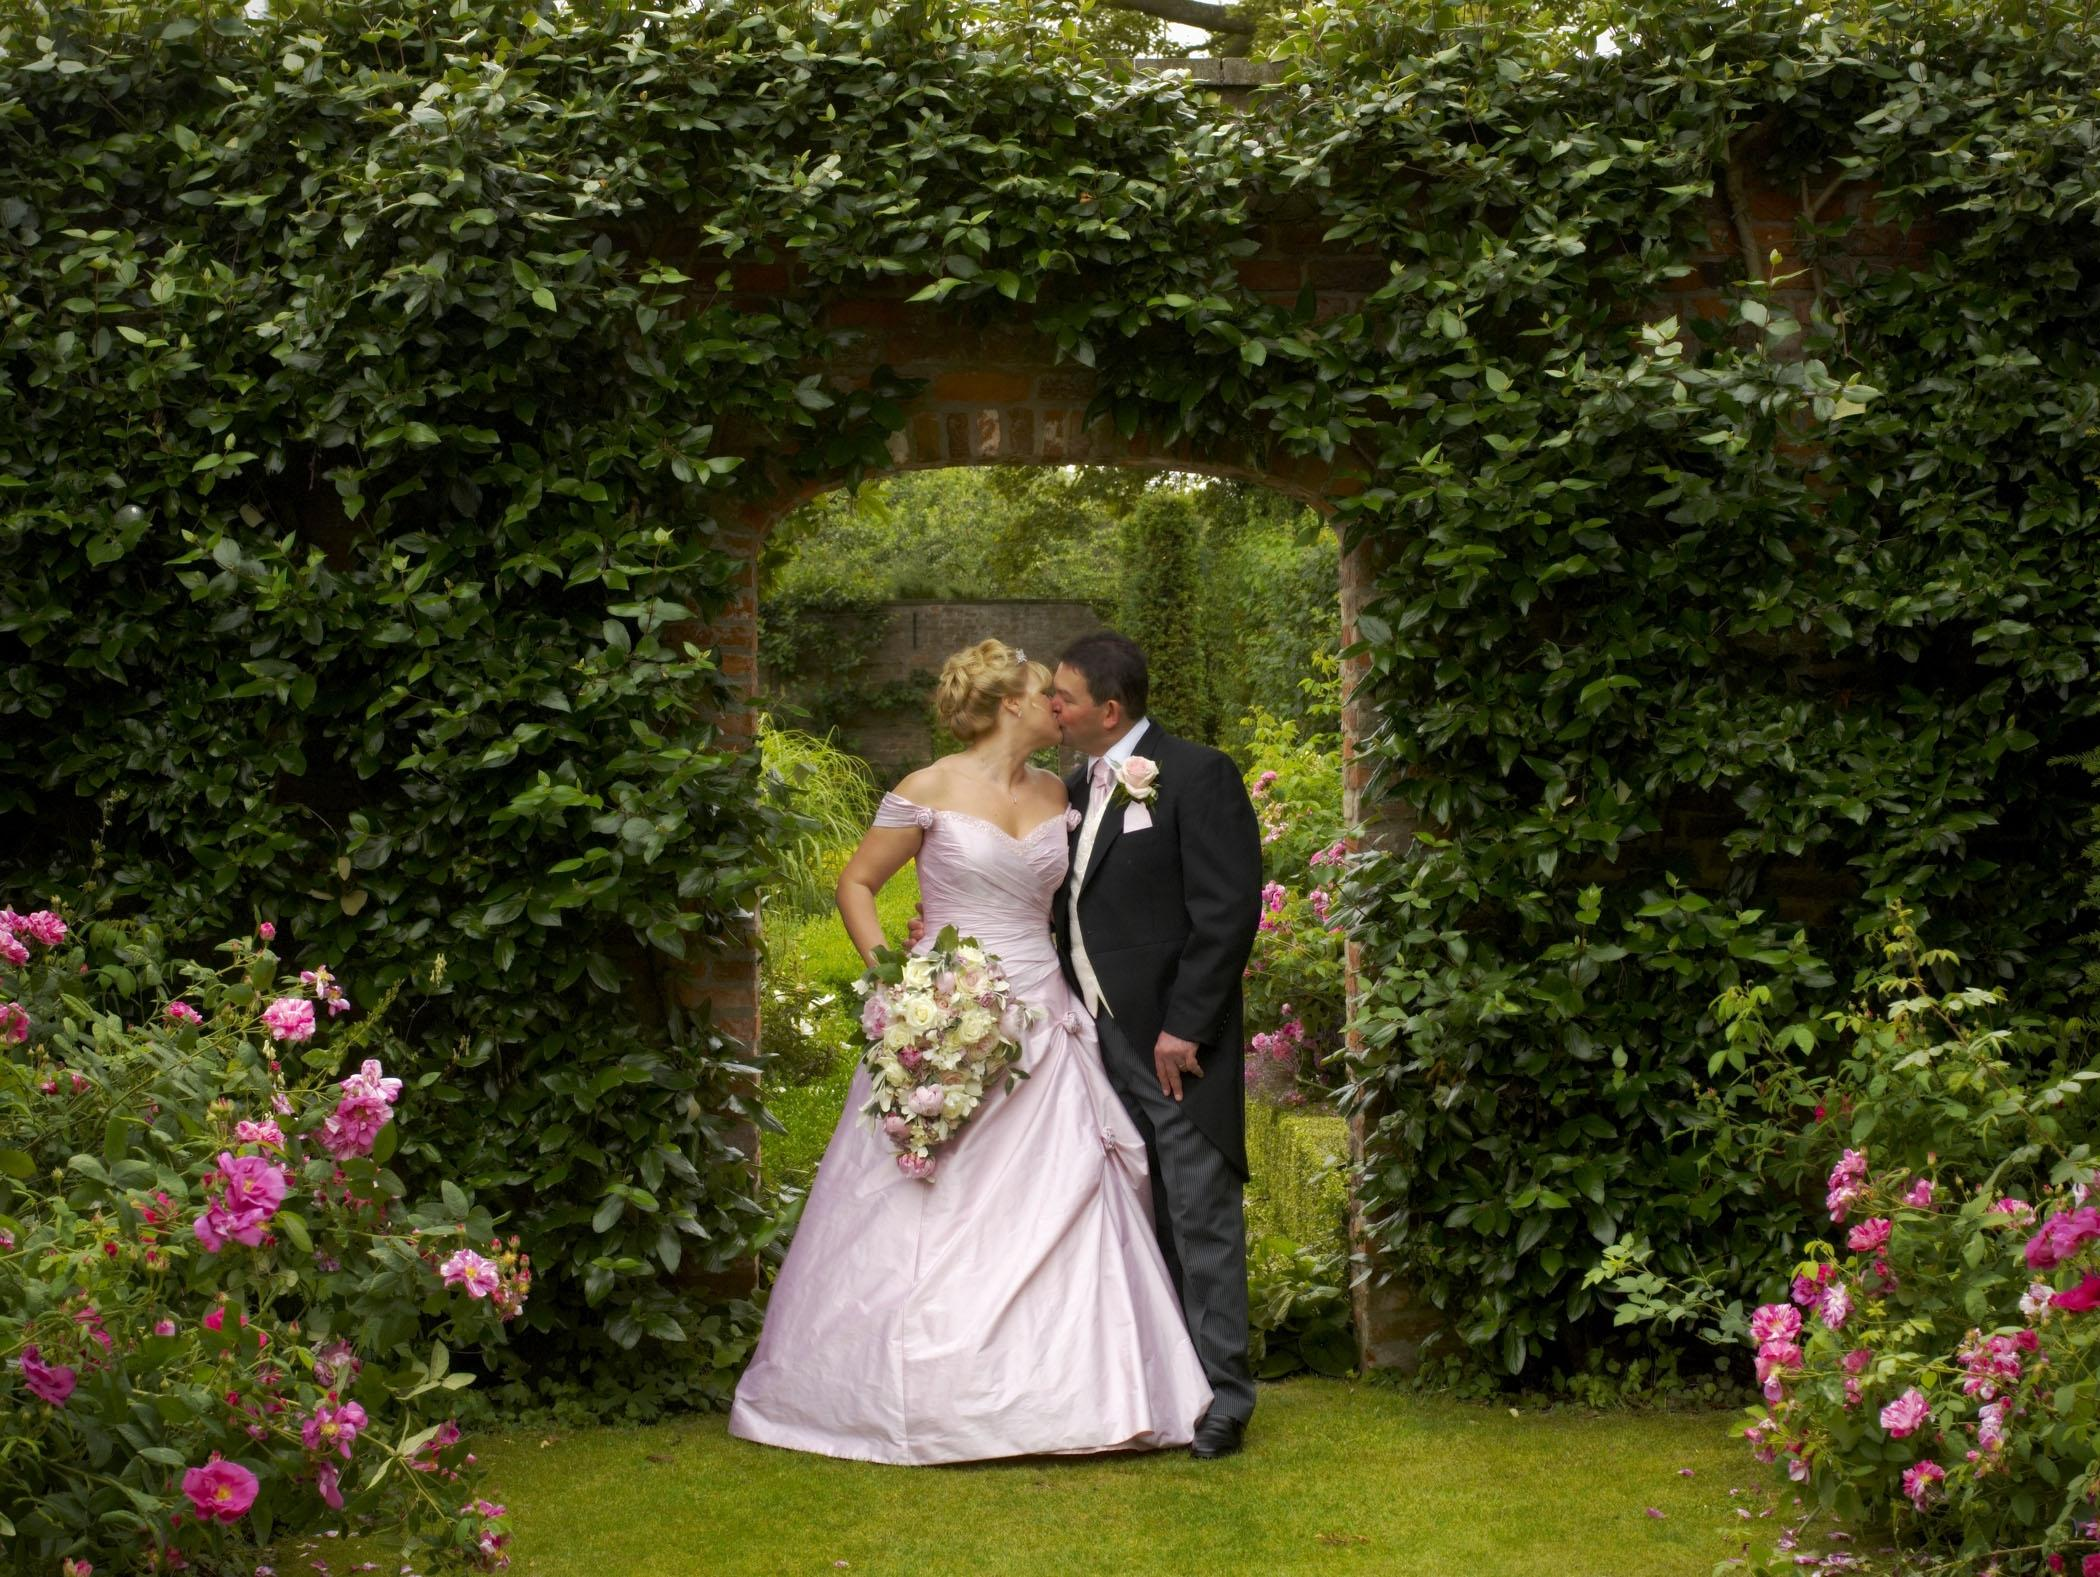 Kiss in Walled Garden